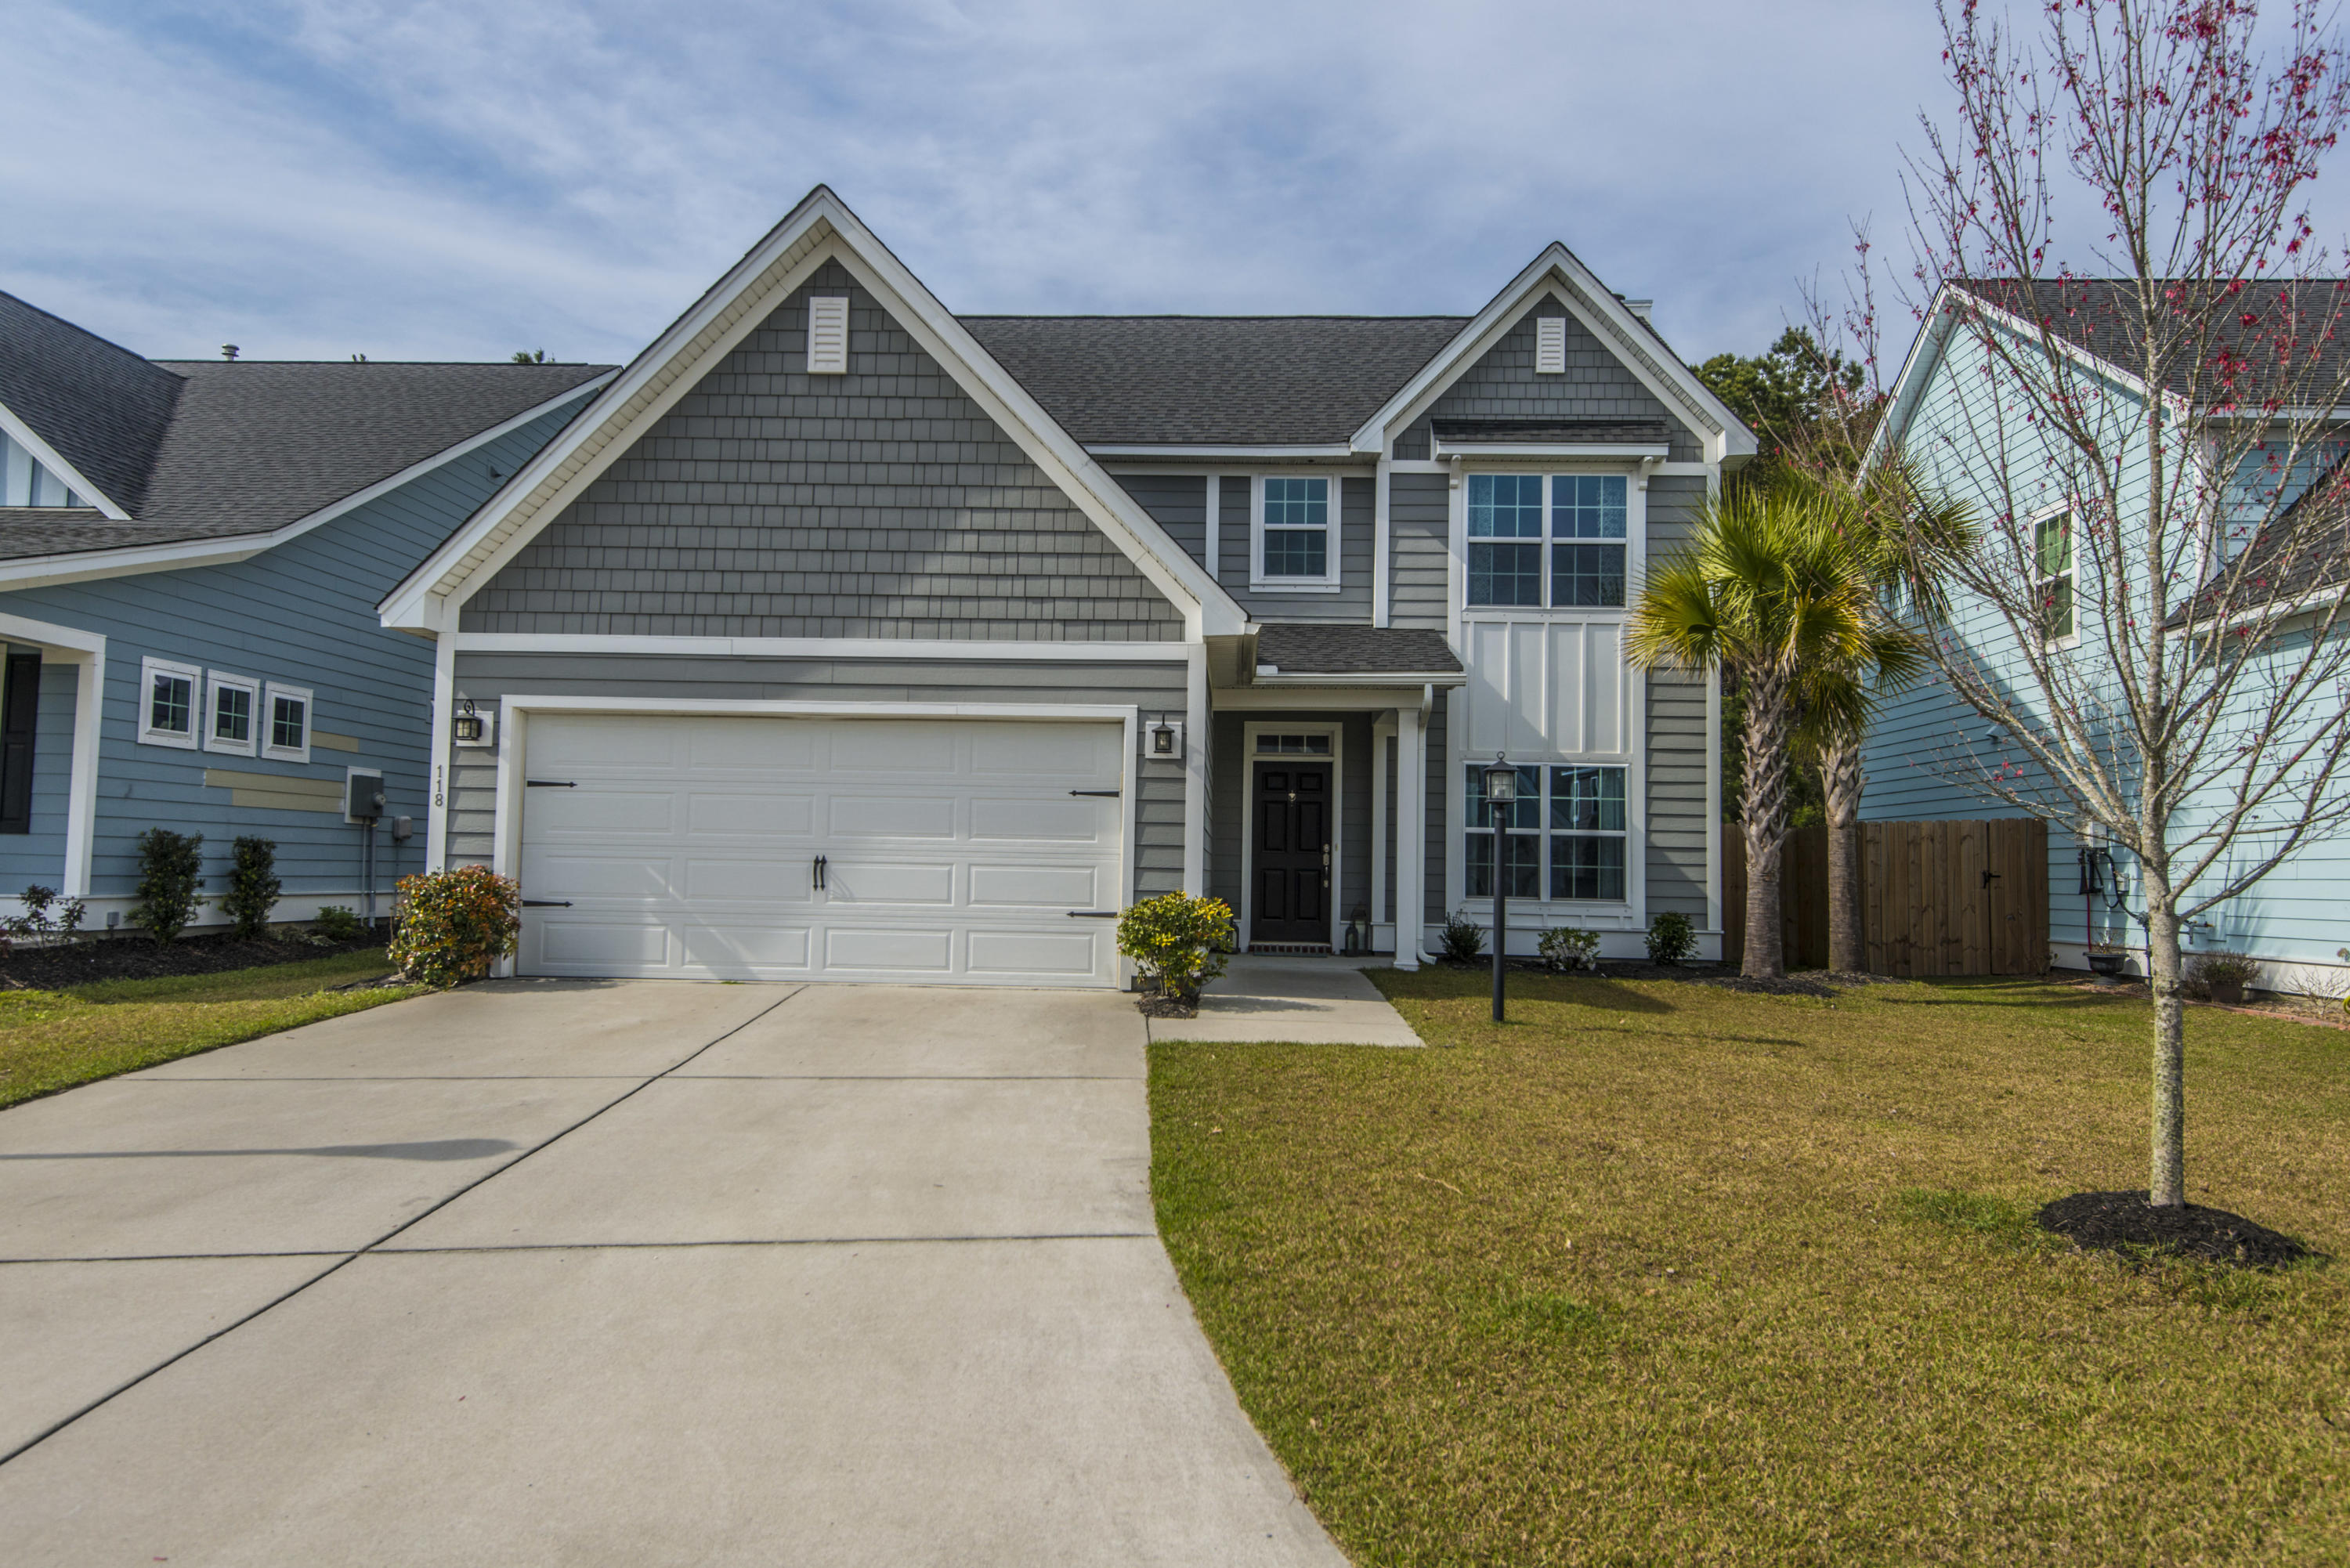 Nelliefield Plantation Homes For Sale - 118 Carriage Hill, Wando, SC - 20